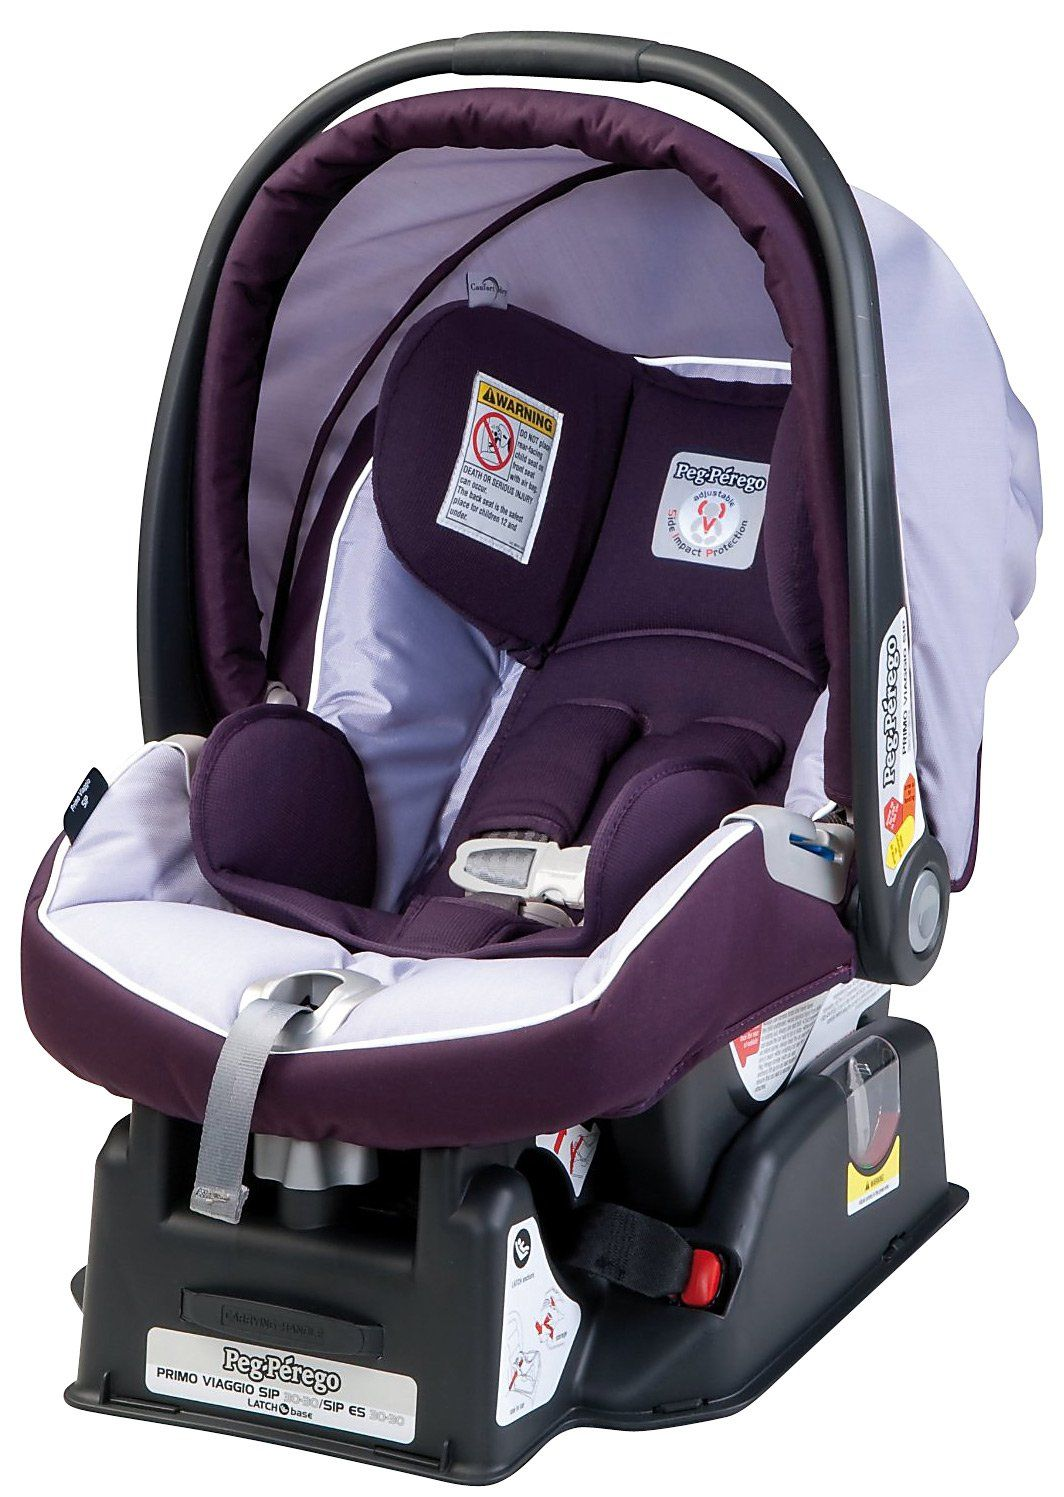 matching car seat to the stroller Baby car seats, Peg